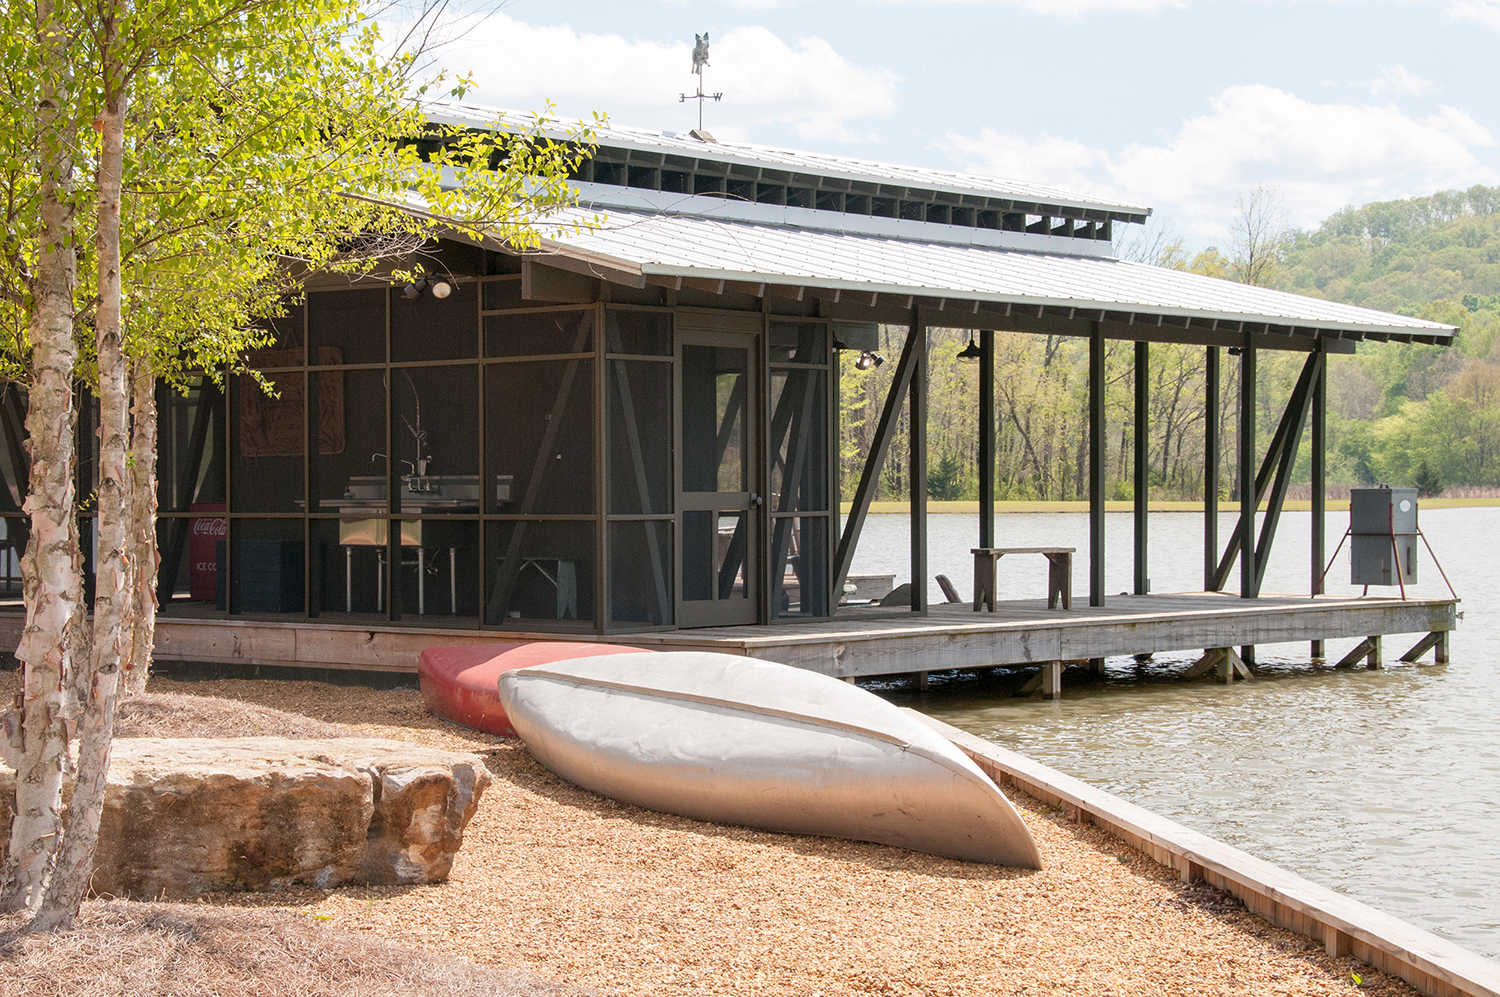 sugar_creek_farm_boathouse_11_pond_lake_boat_house_dock_screened_porch_fish_cleaning_station_1500.jpg